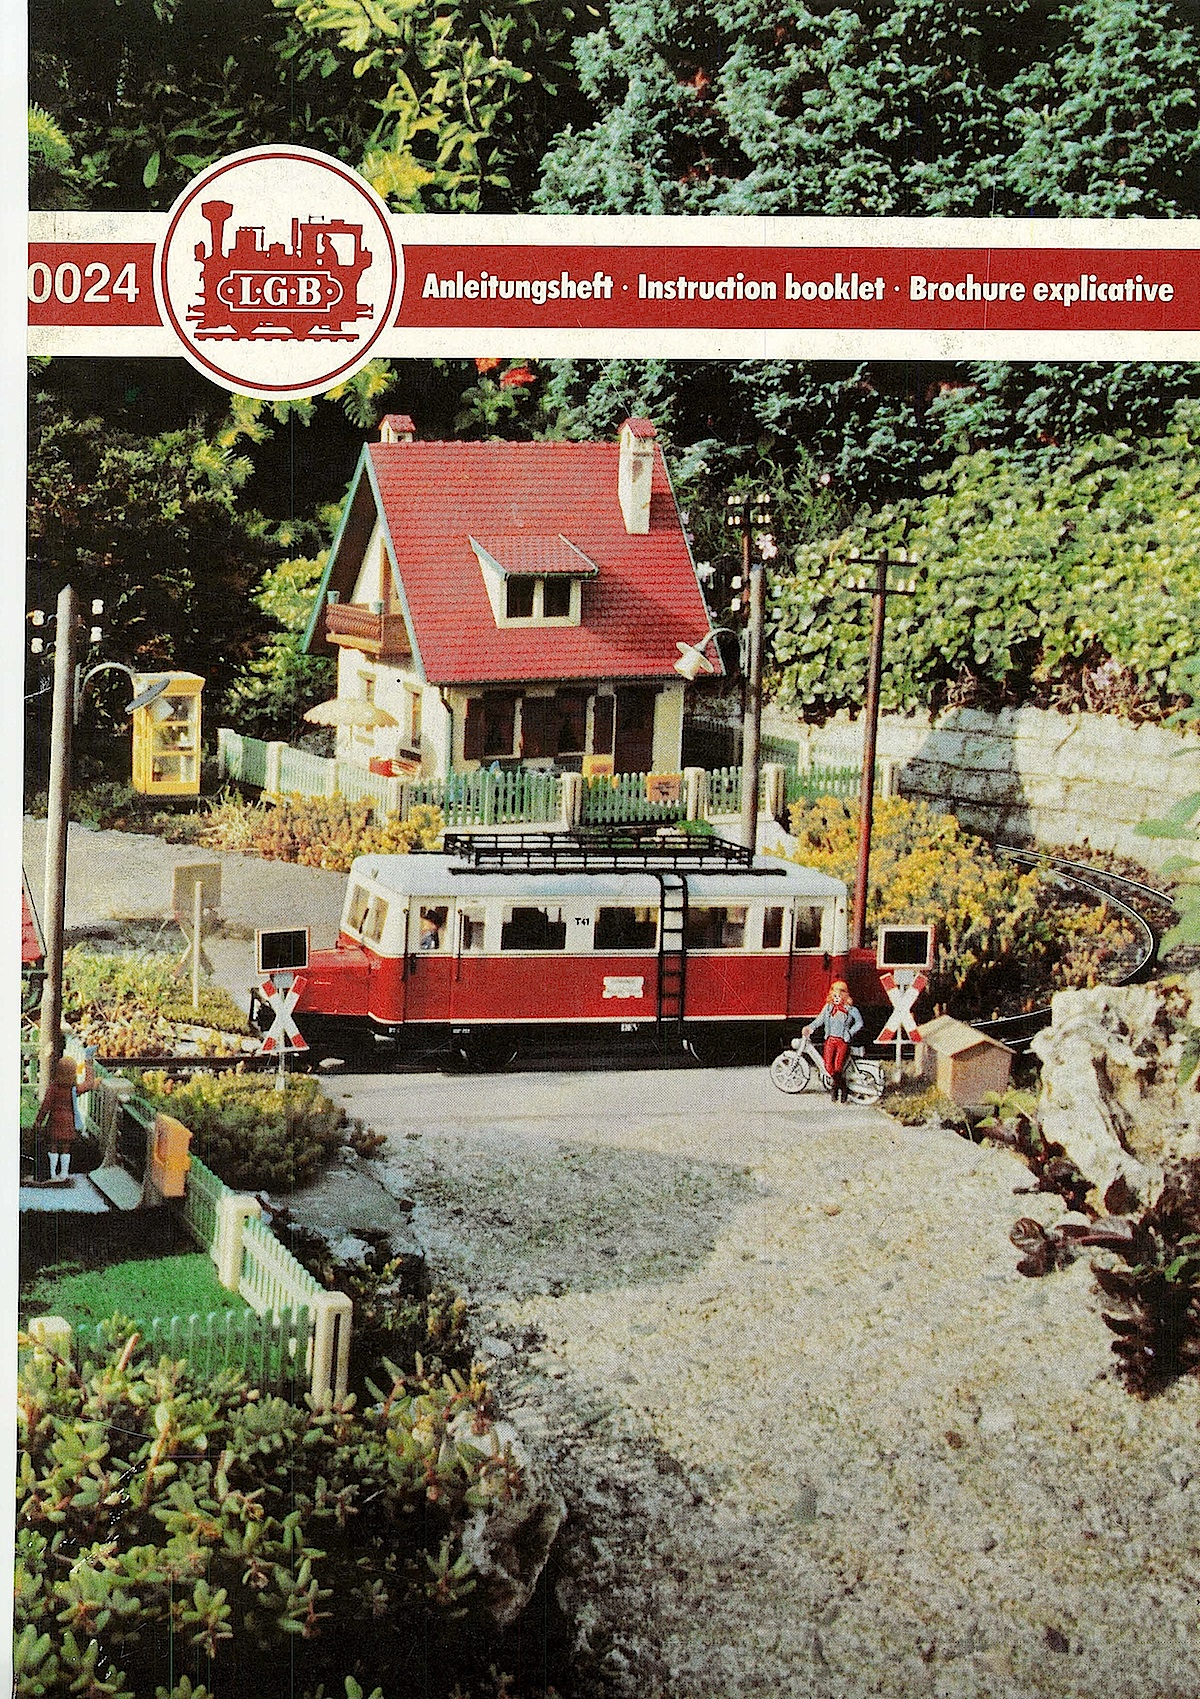 LGB Anleitungsheft (Instruction booklet) 1983